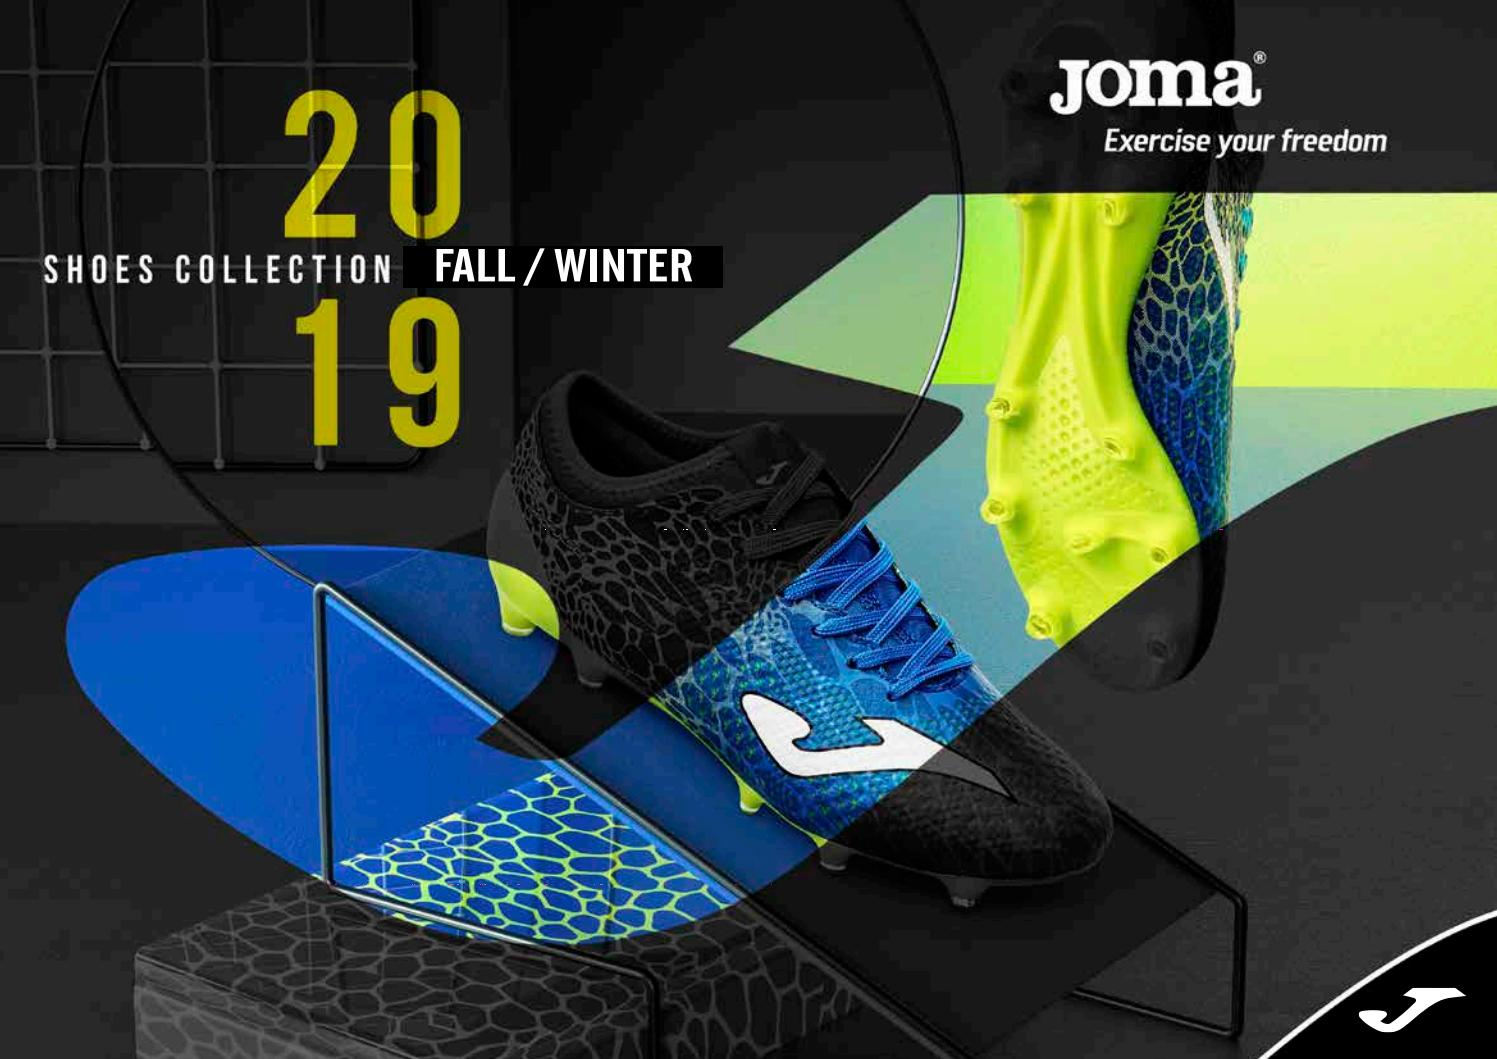 Joma Shoes Collection Fall Winter by Tackla issuu